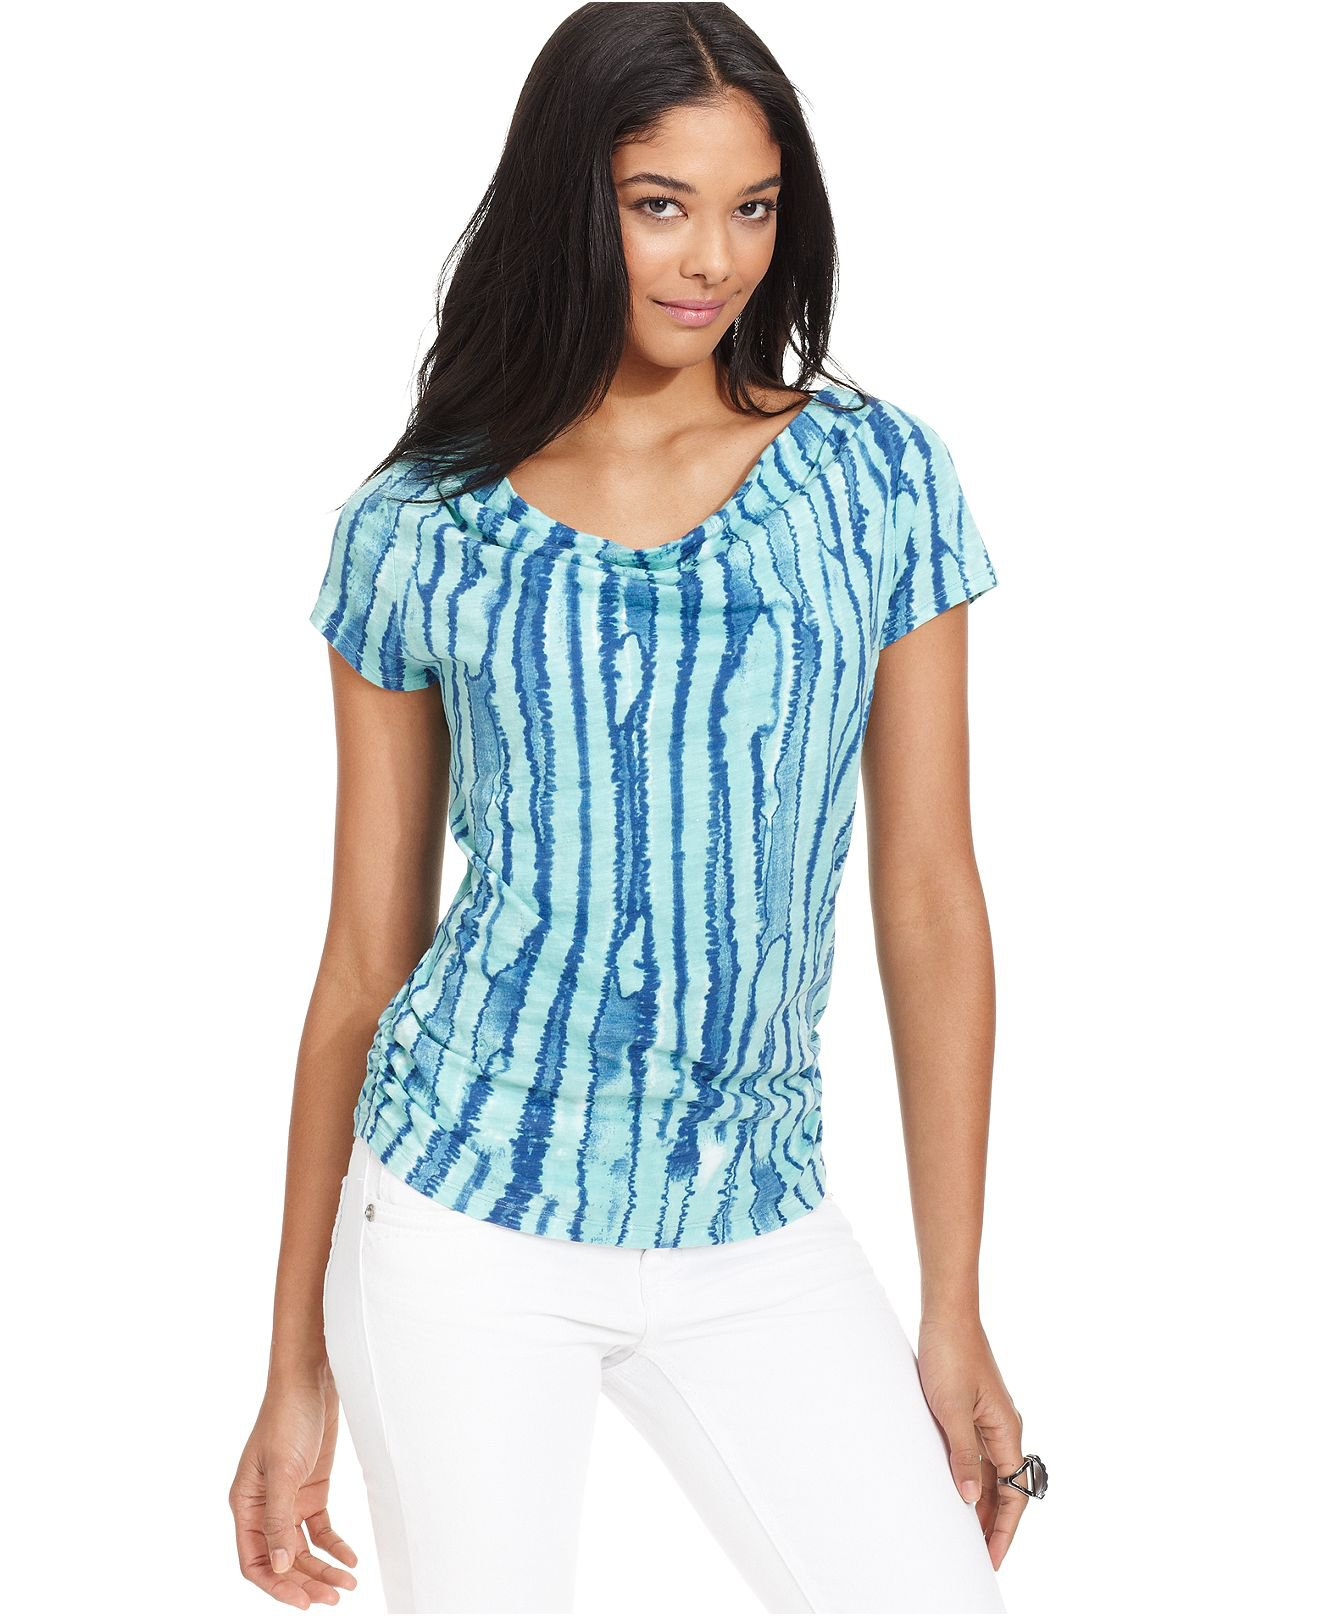 DKNY Jeans Top Cap-Sleeve Cotton Printed from Macys | Blue Hue!